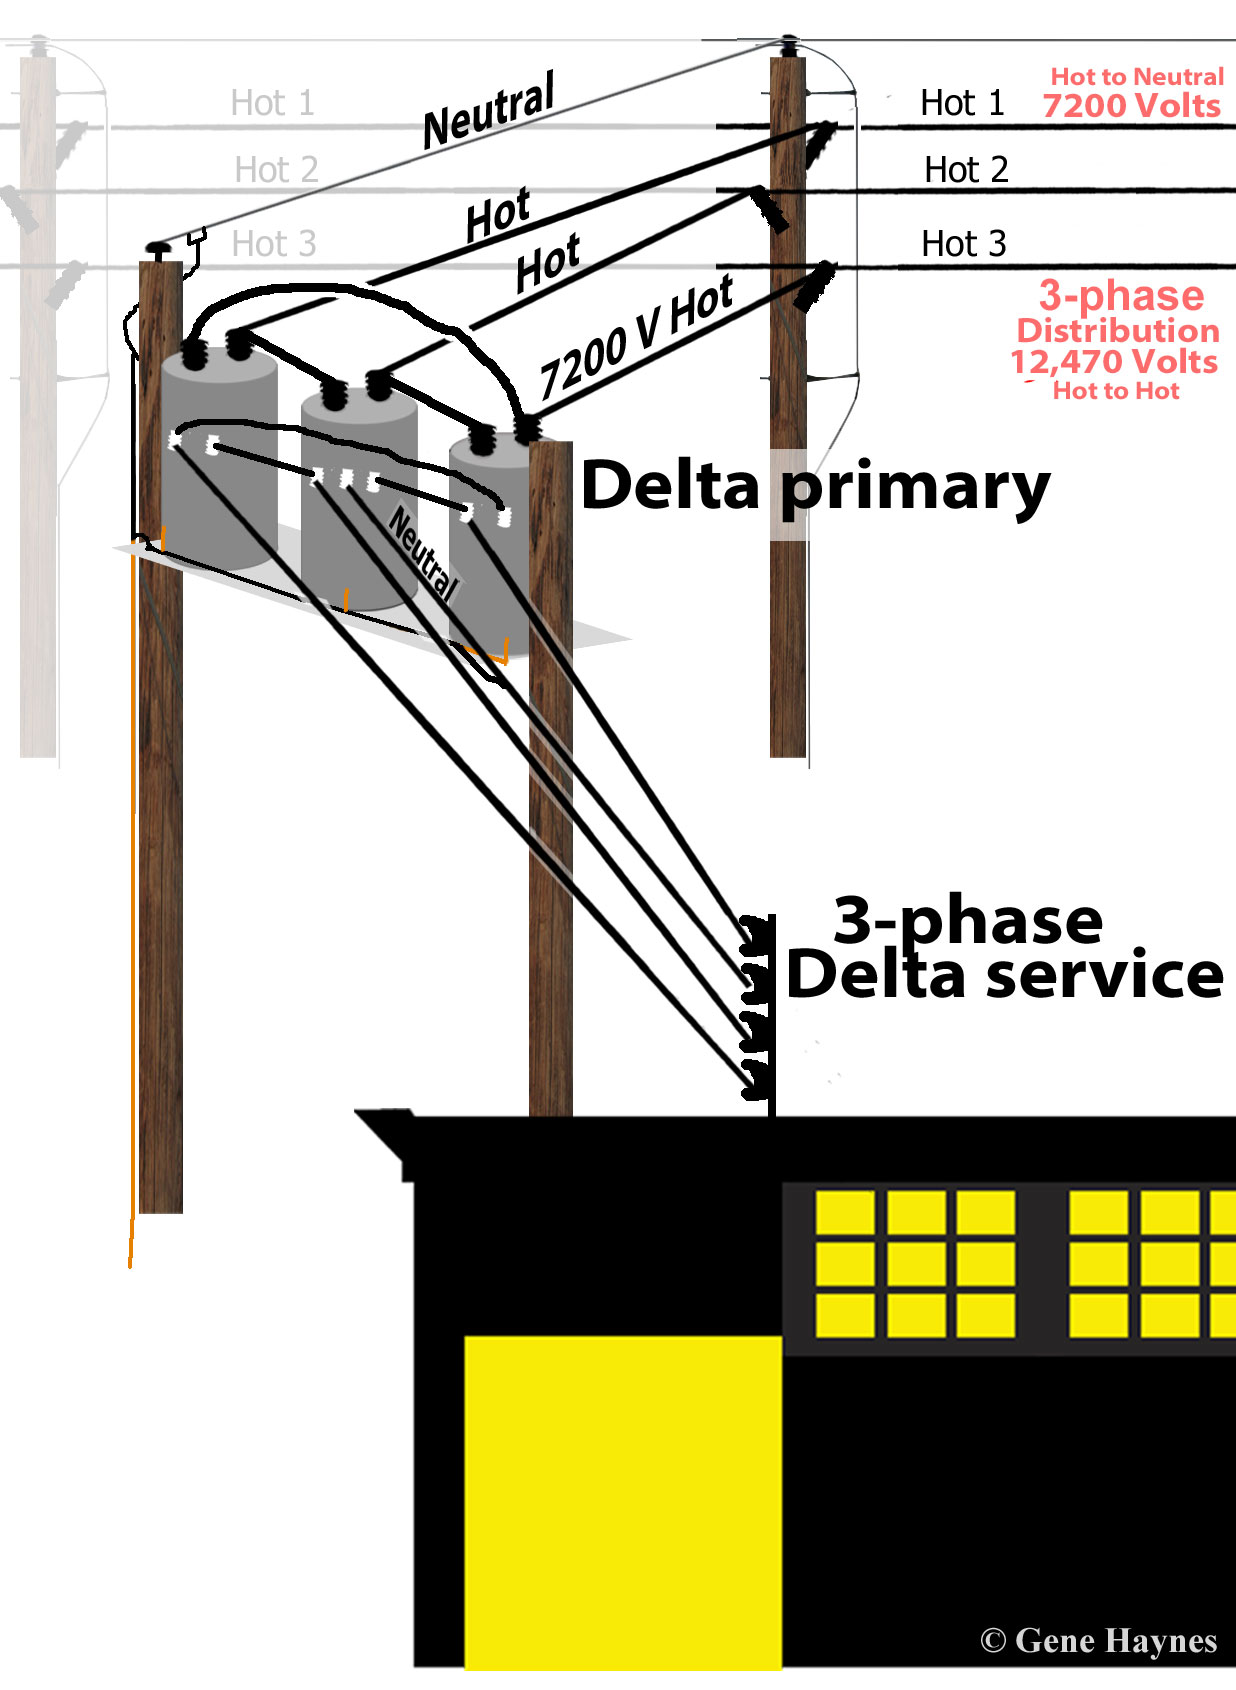 3 phase 4 wire water heater diagram  | 1800 x 2461